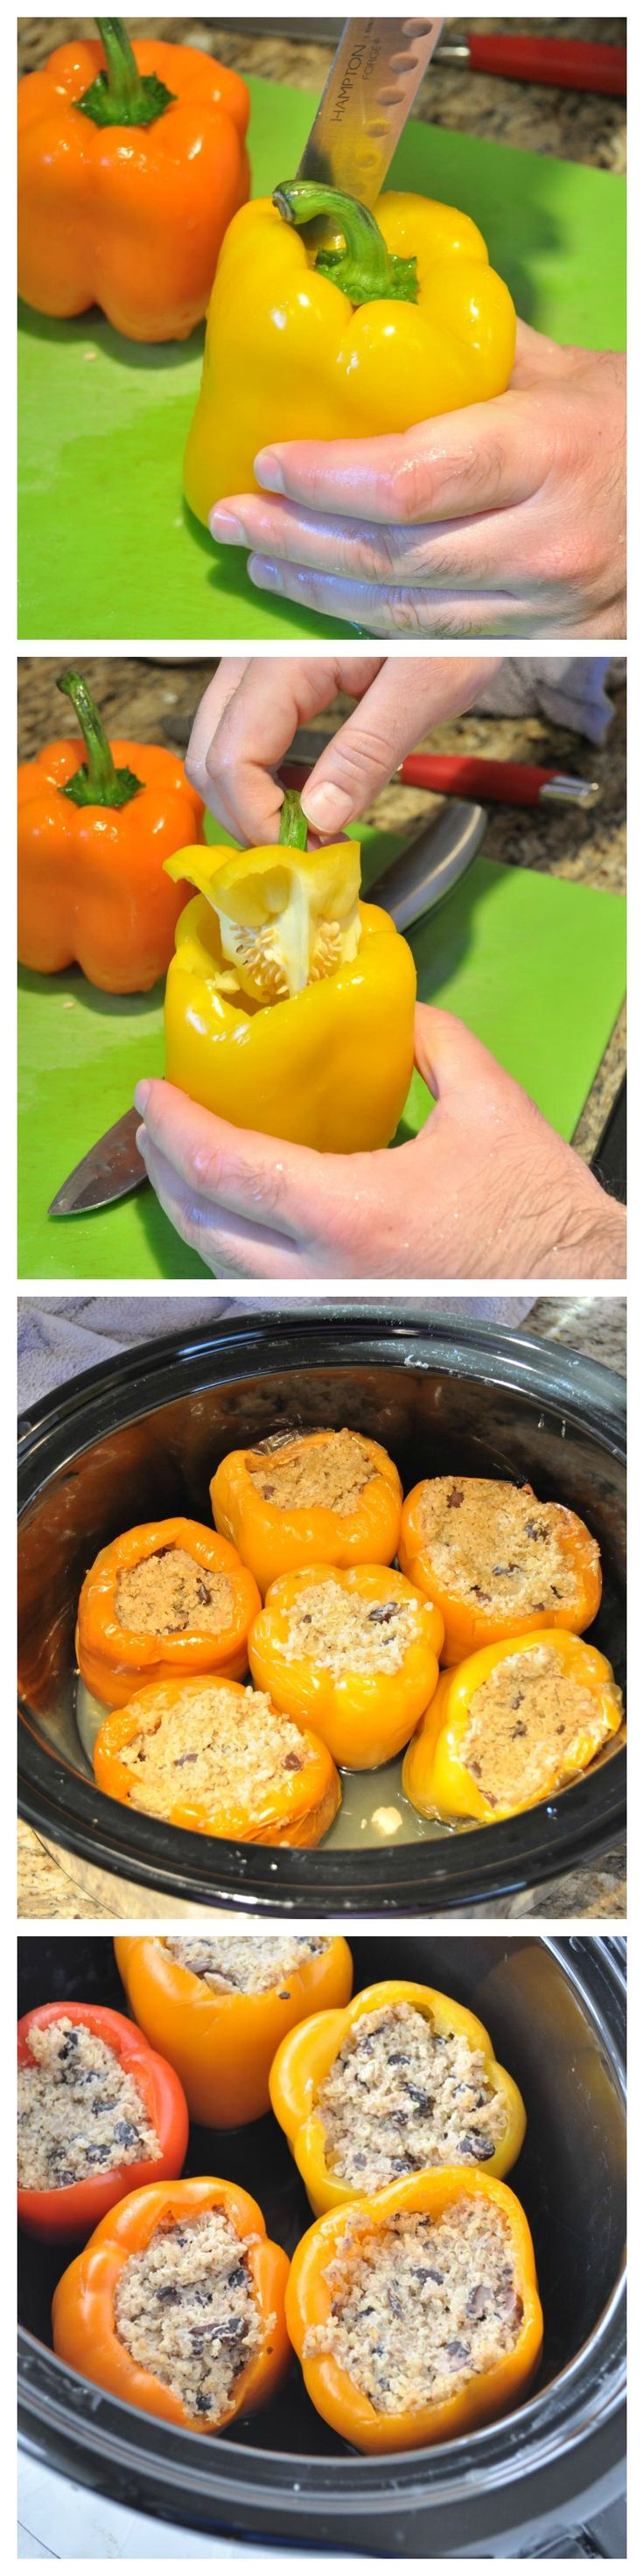 Super easy Slow Cooker Stuffed Peppers. A healthy and filling meal. Vegan and gluten free.